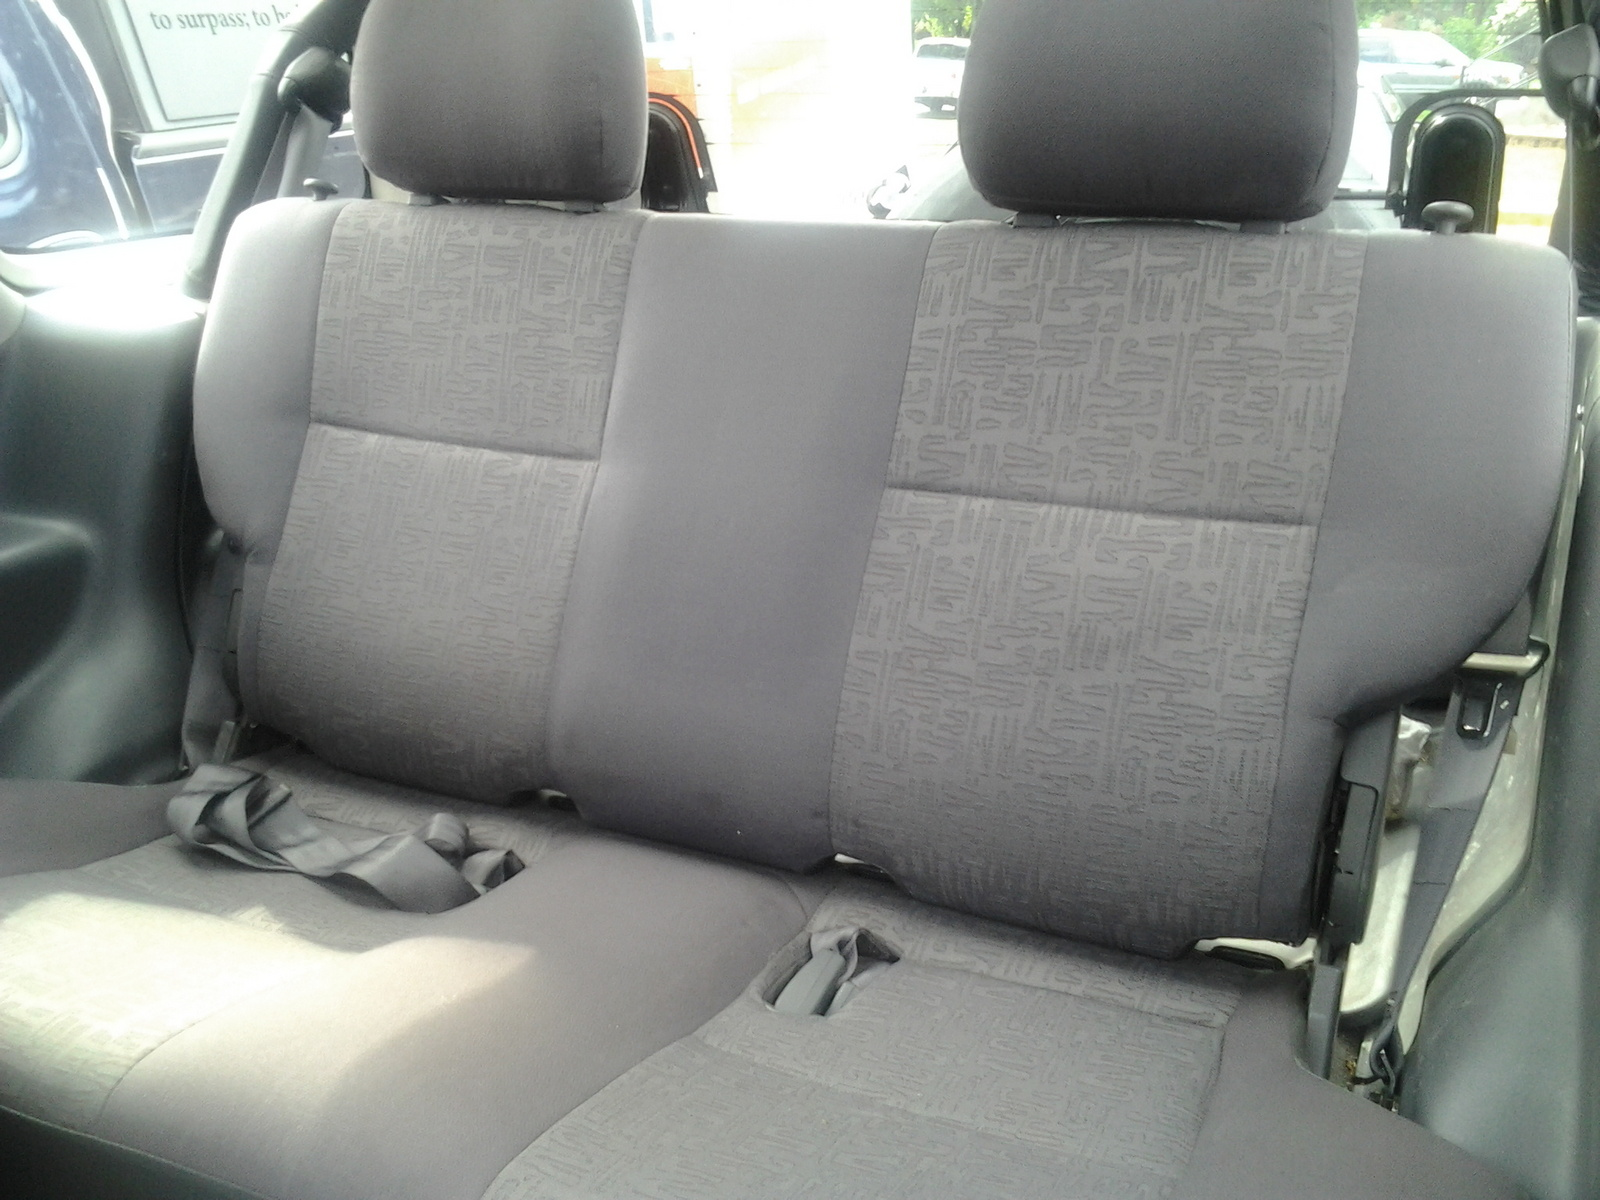 Isuzu Rodeo Sport interior #2